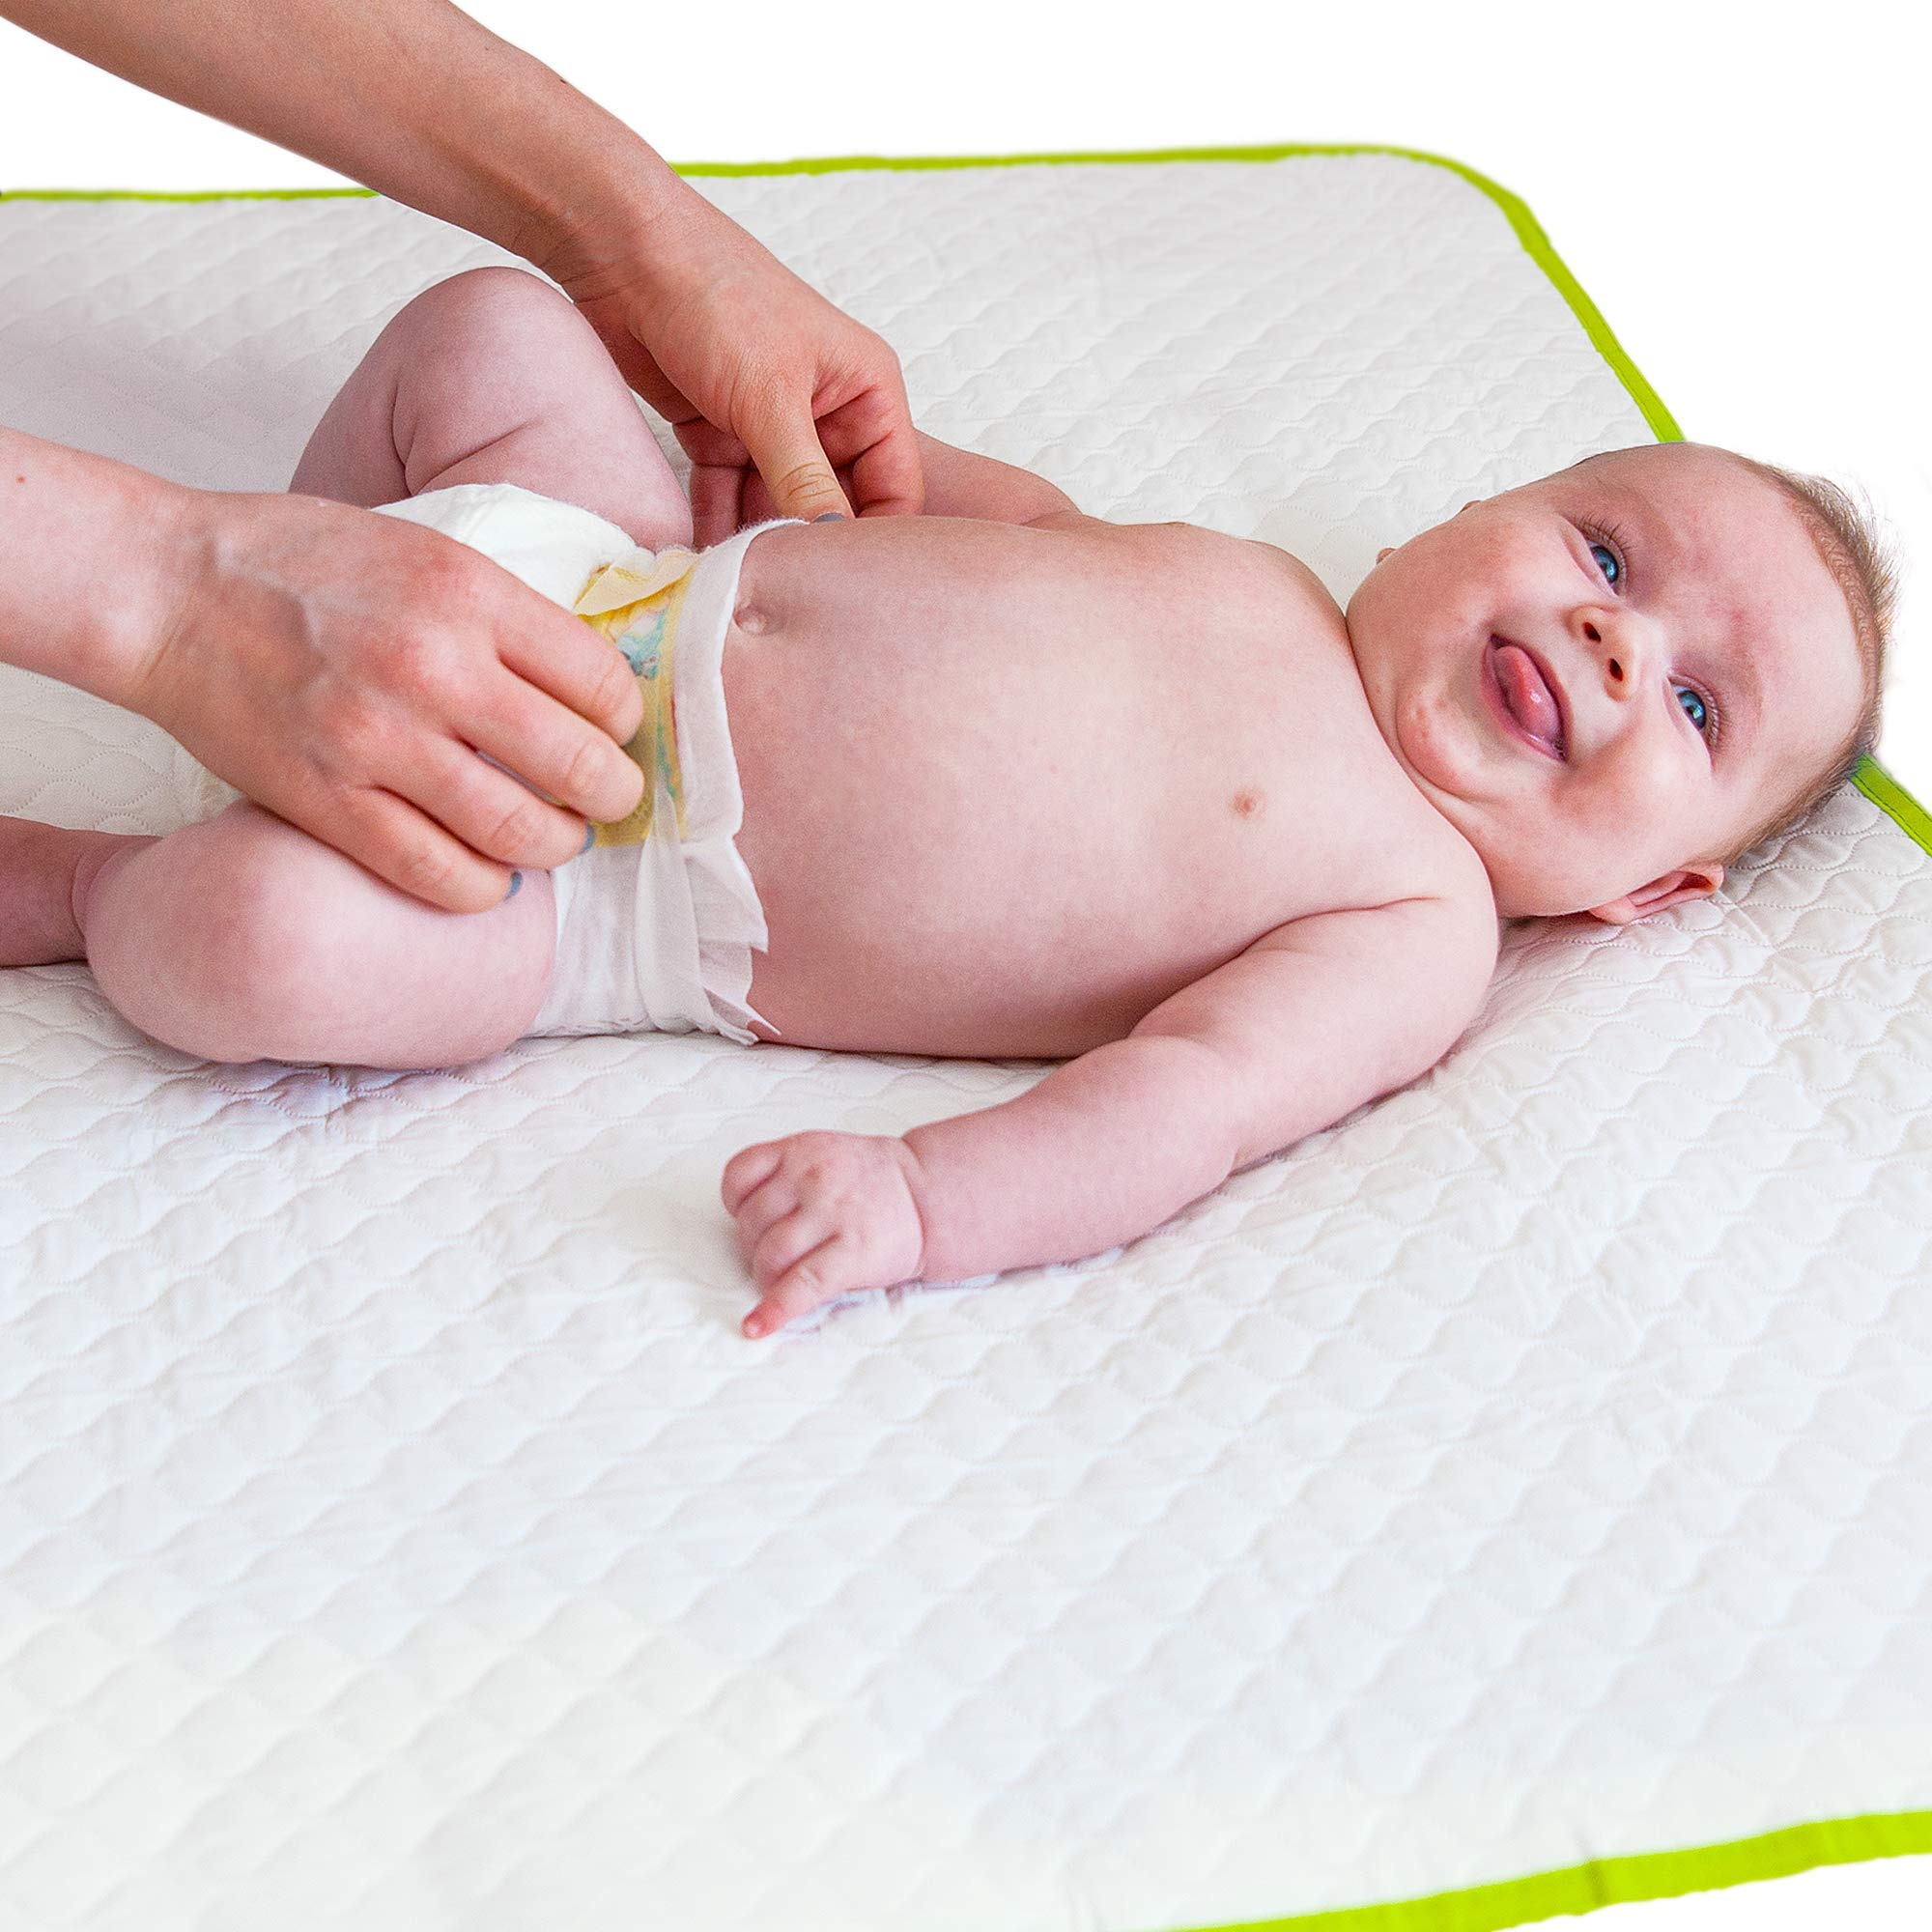 Changing Pad Portable - Biggest Reusable Changing Mat - Large Size - Comfortable Diaper Change Mat White Color Reinforced Seams - Free Multi-Function Storage Bag by BABY LOOVI